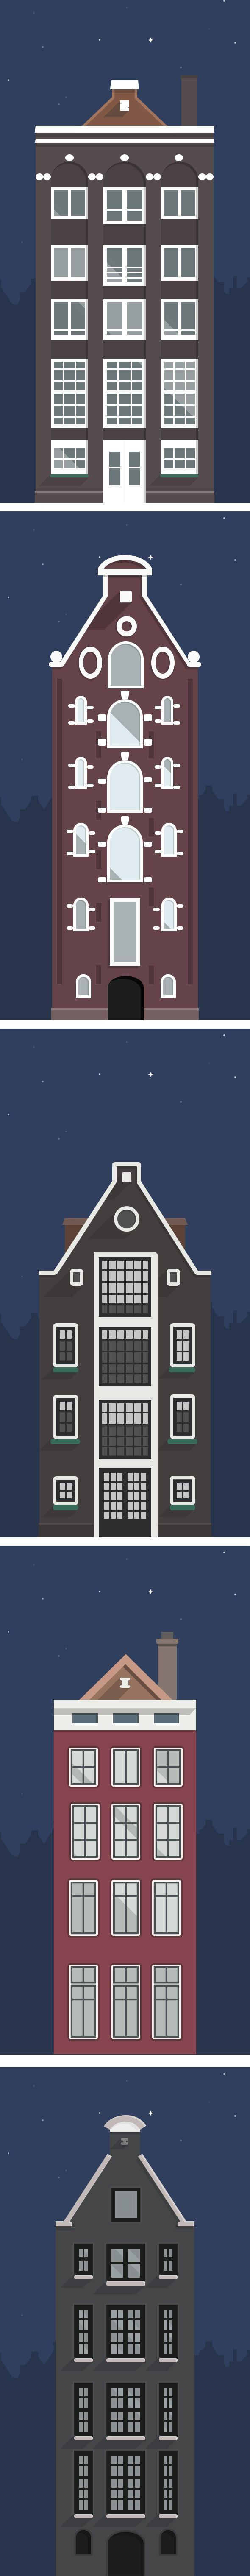 Amsterdam's Buildings Illustration by Sergey Shmidt, via Behance